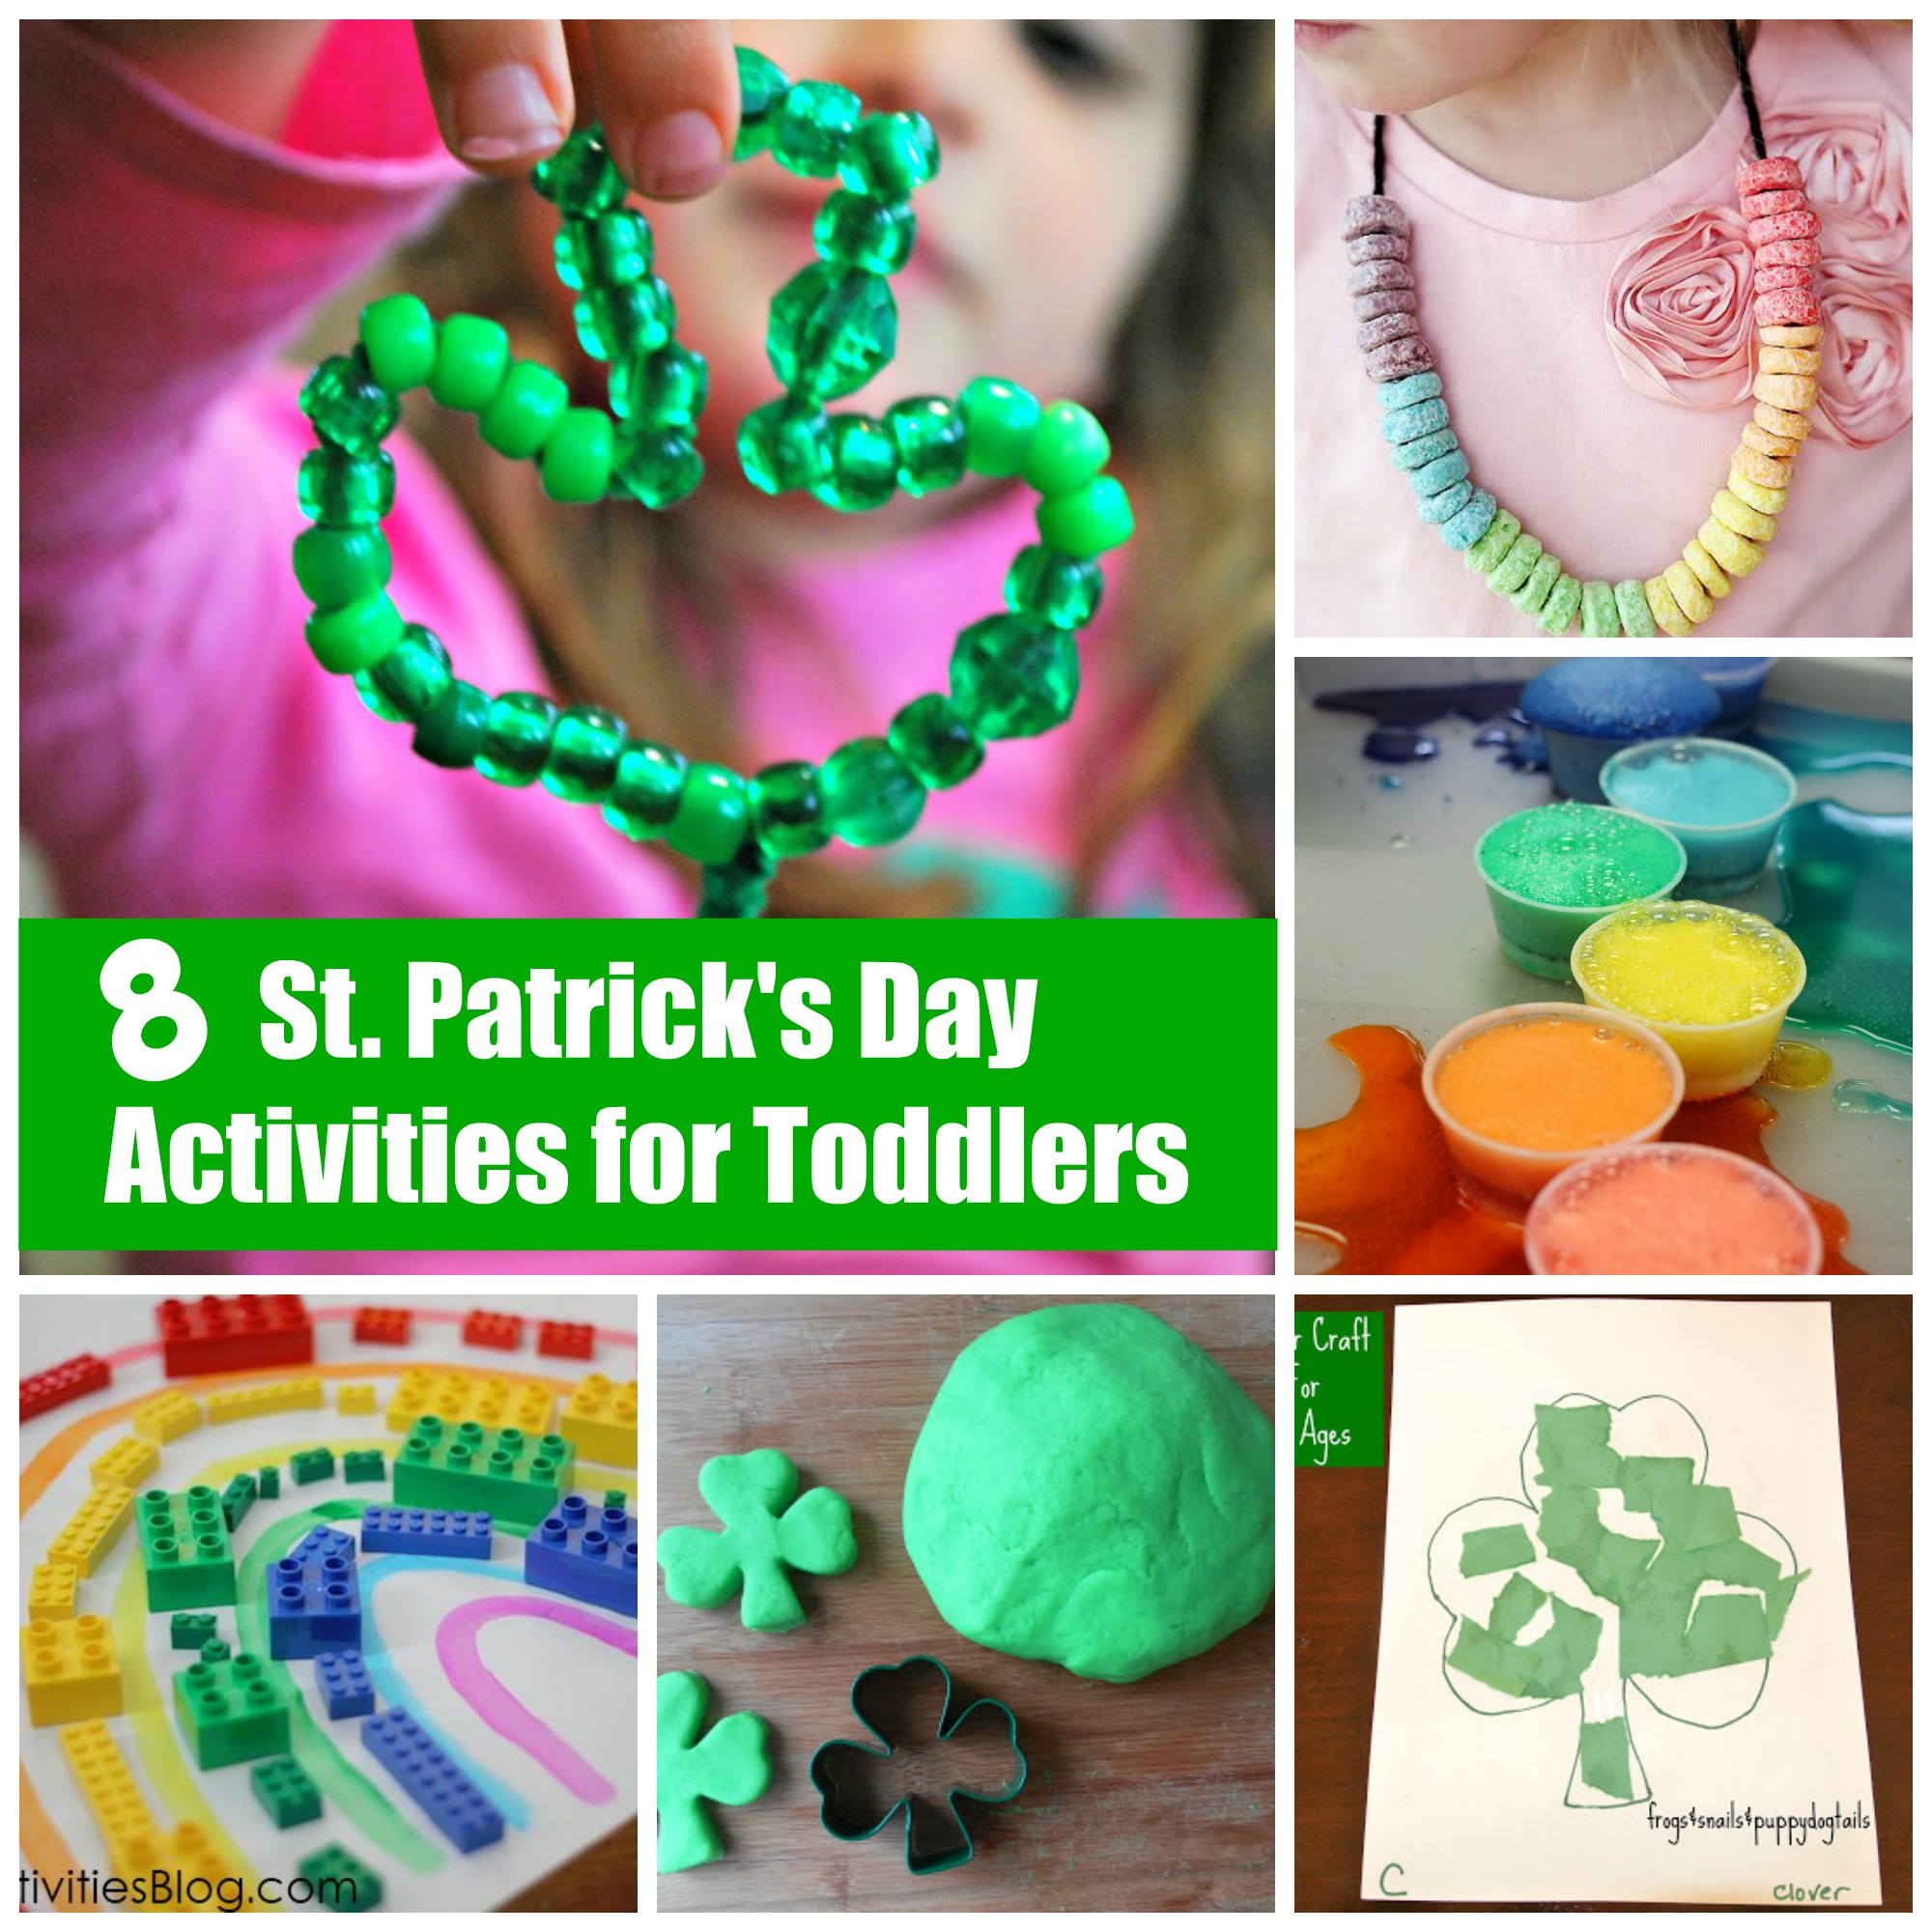 Crafts for a 3 year old -  3 Year Old Arts And Crafts For Download